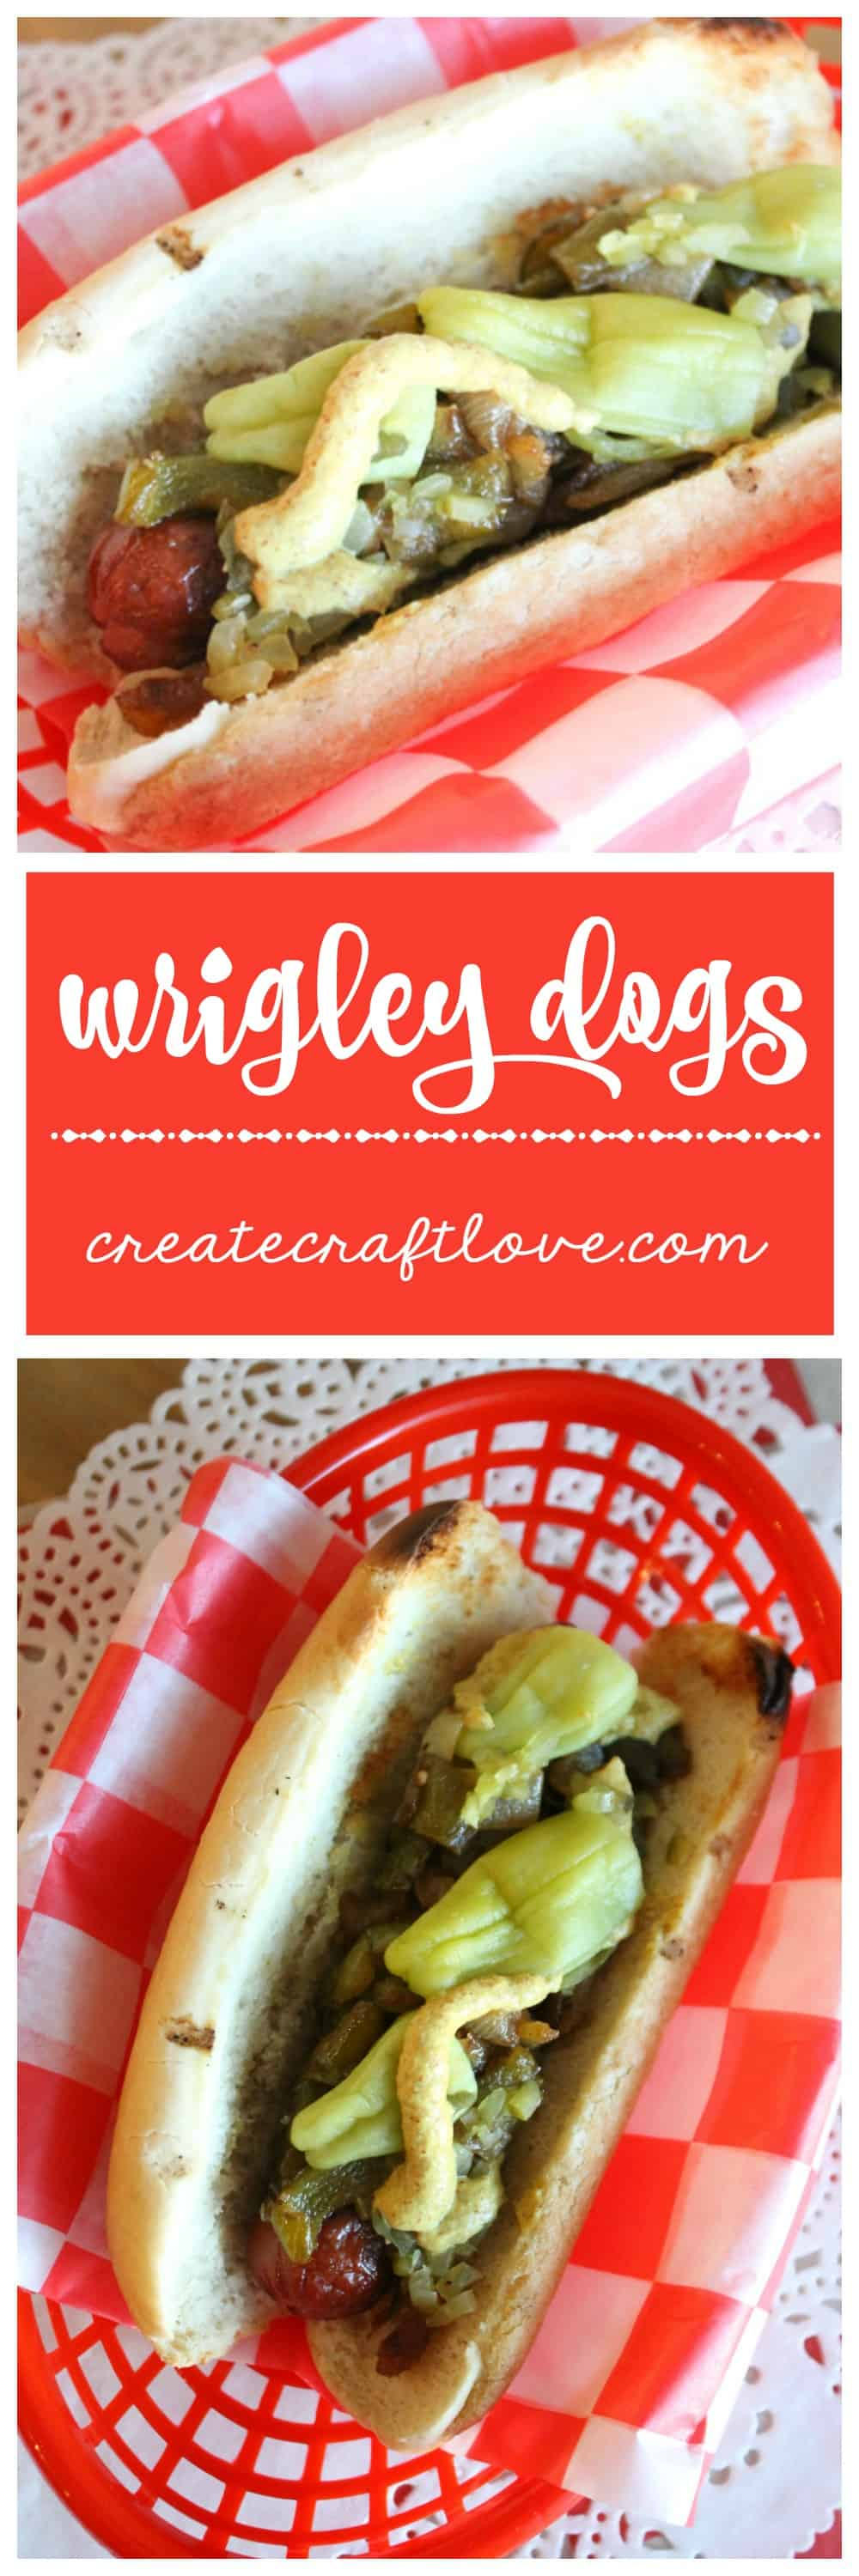 When baseball season comes around, I like to cook some of these Wrigley Dogs and enjoy the smells of Wrigley Field.